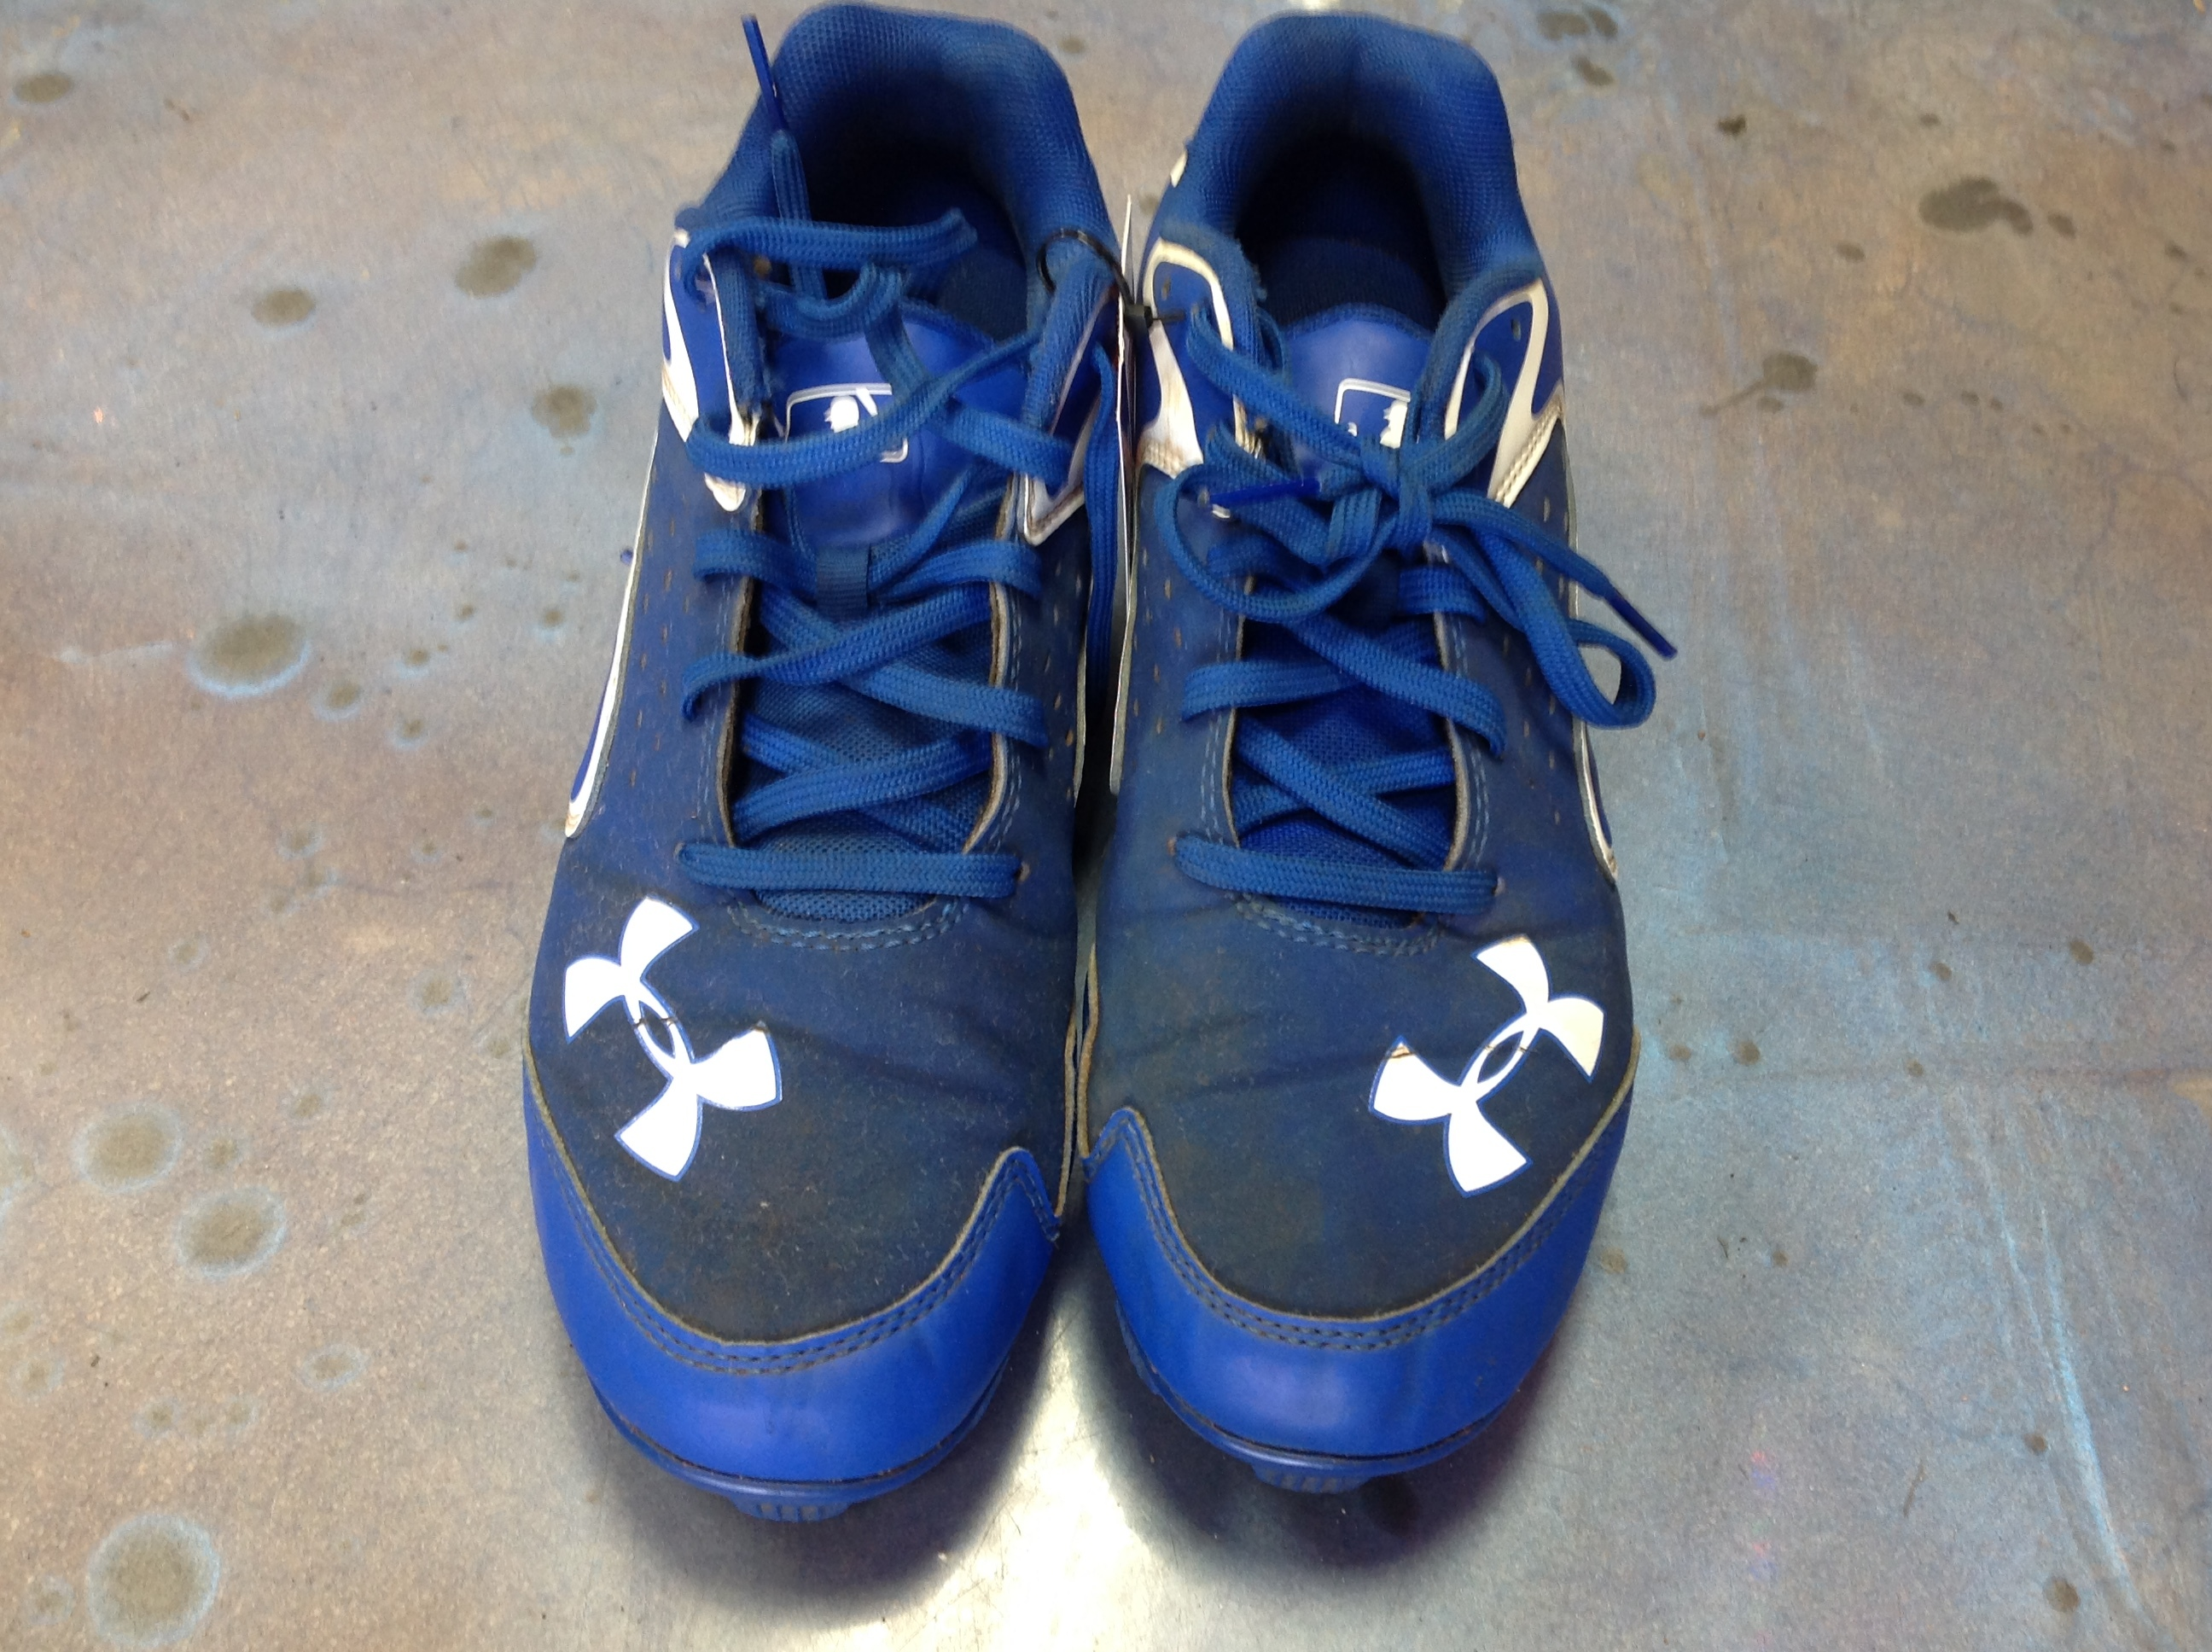 UNDER ARMOUR BASEBALL CLEATS MENS SIZE 6.5